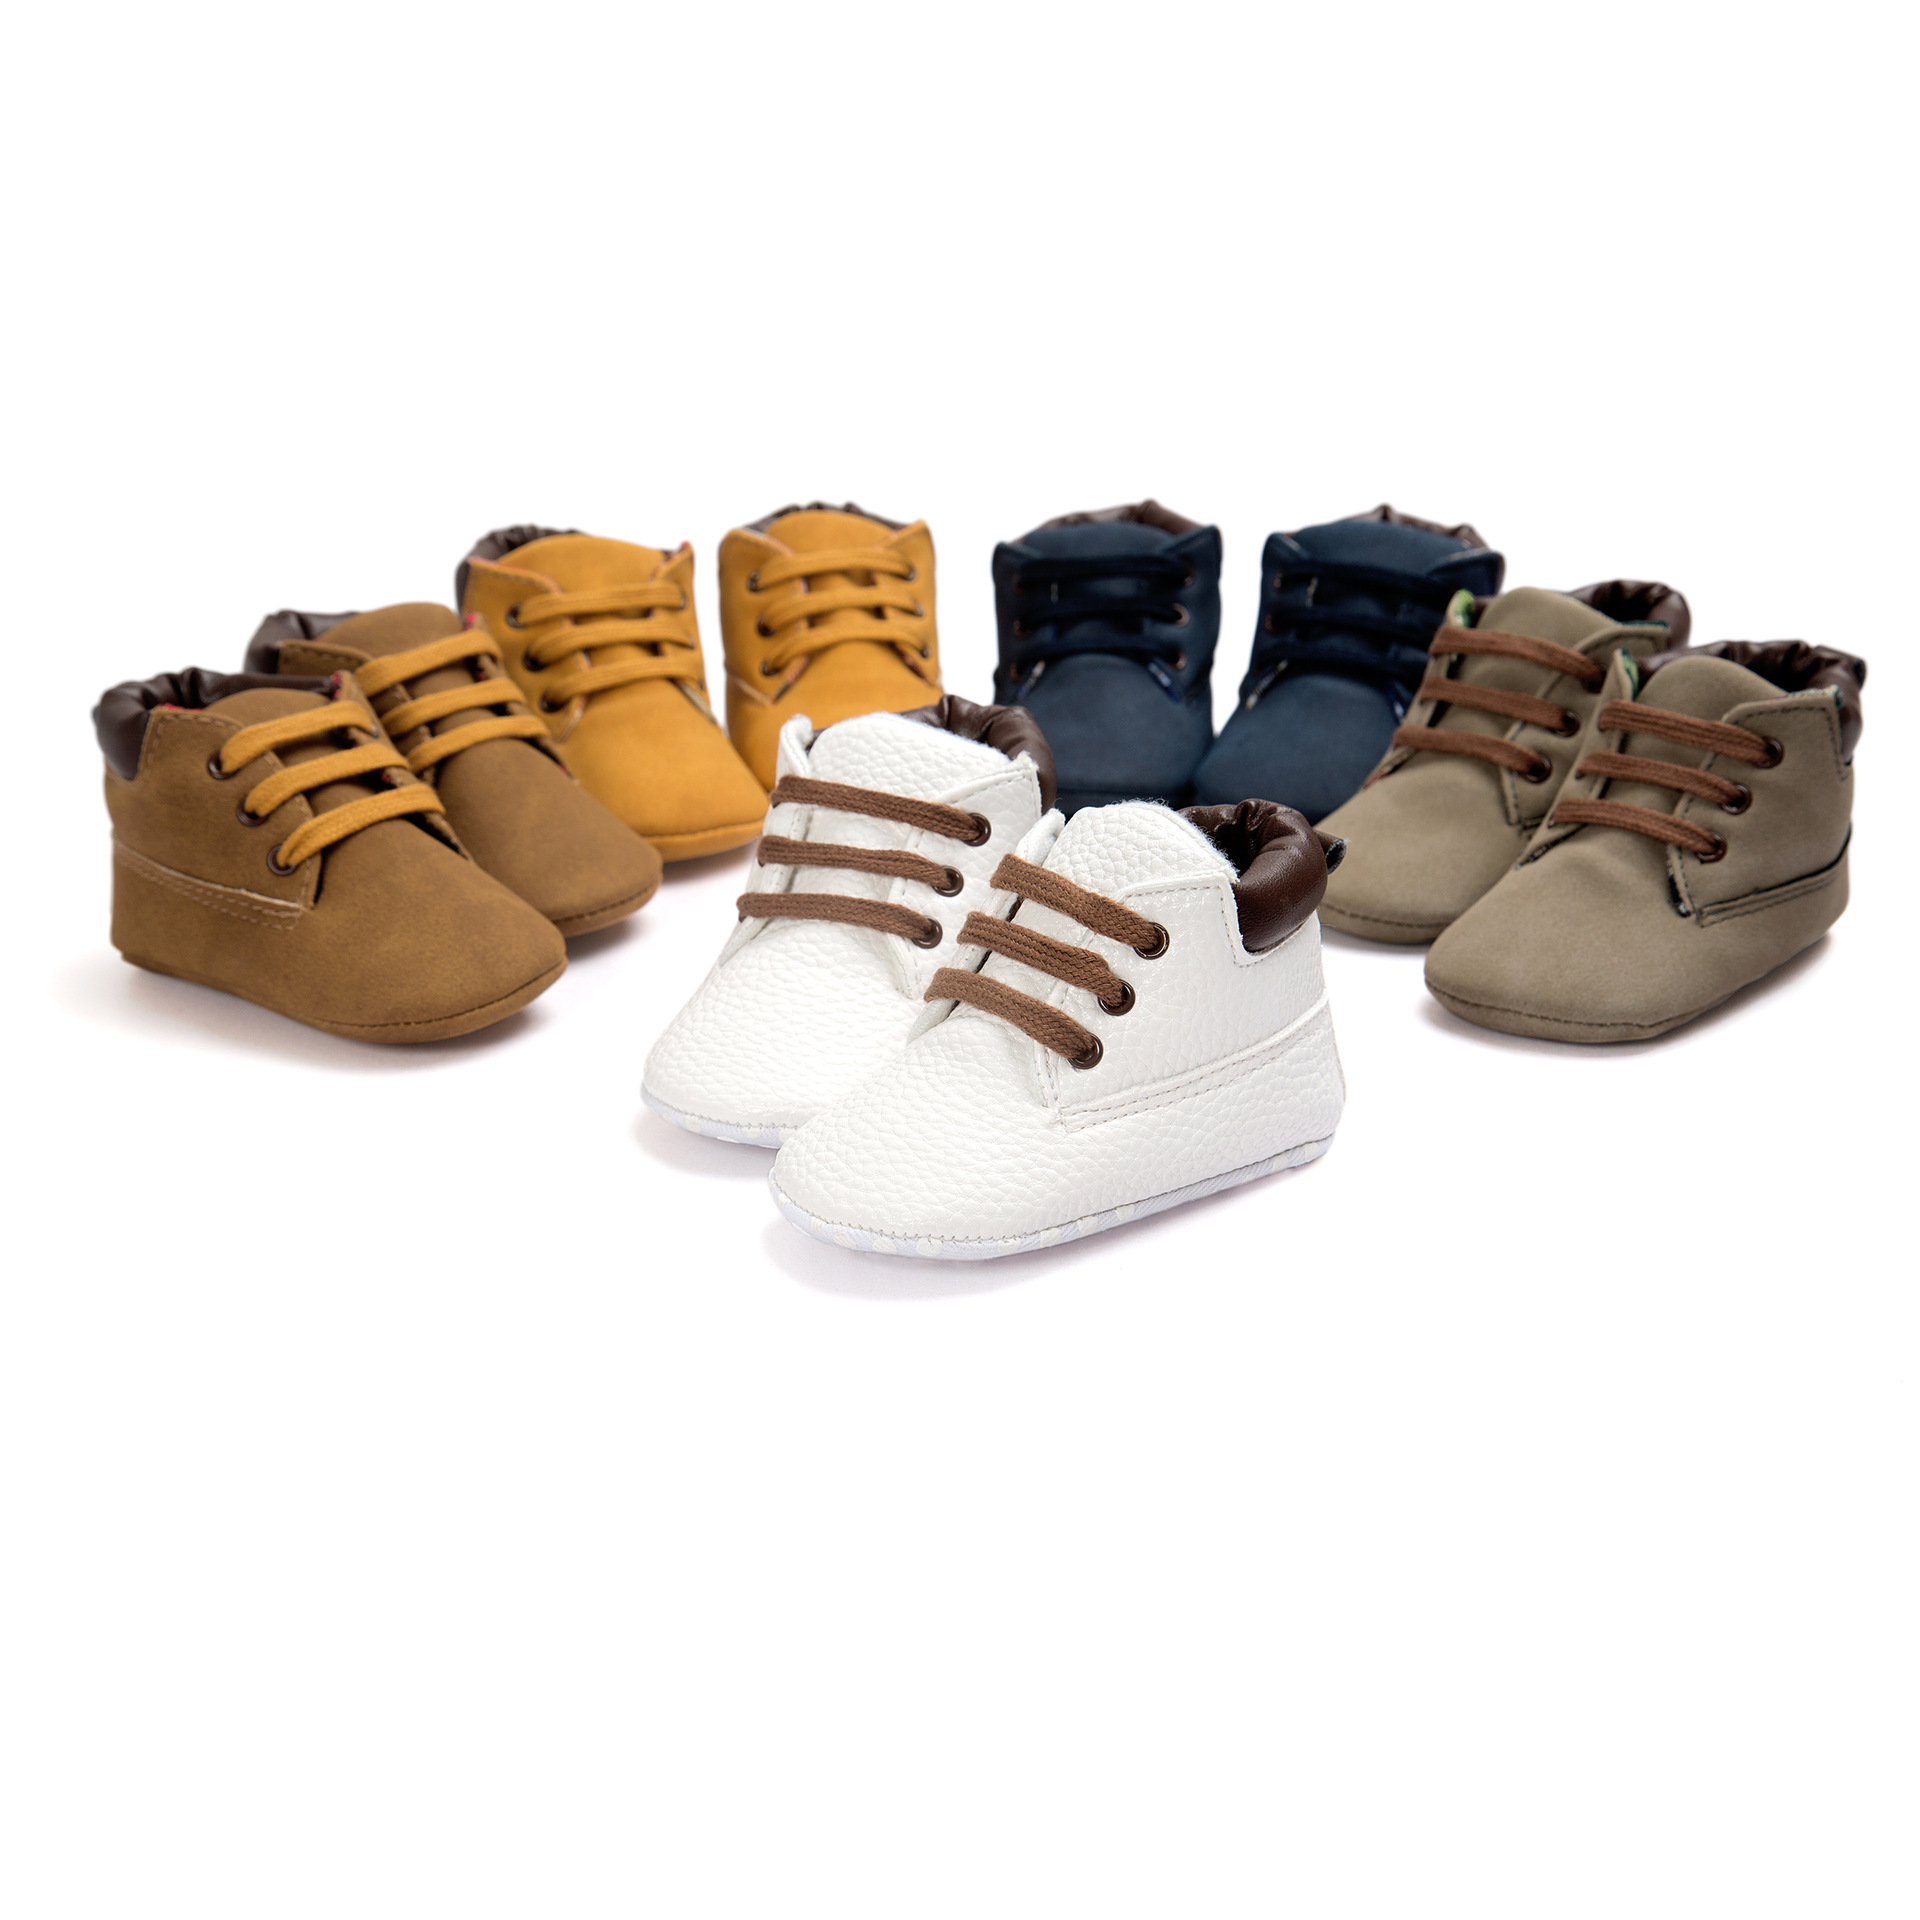 ROMIRUS Baby Walkers First Shoes Këpucë për Foshnje Soft Tottels Fashion Bottom Fashion Moccasin Jo-shqip PU lëkure PU Prewalkers